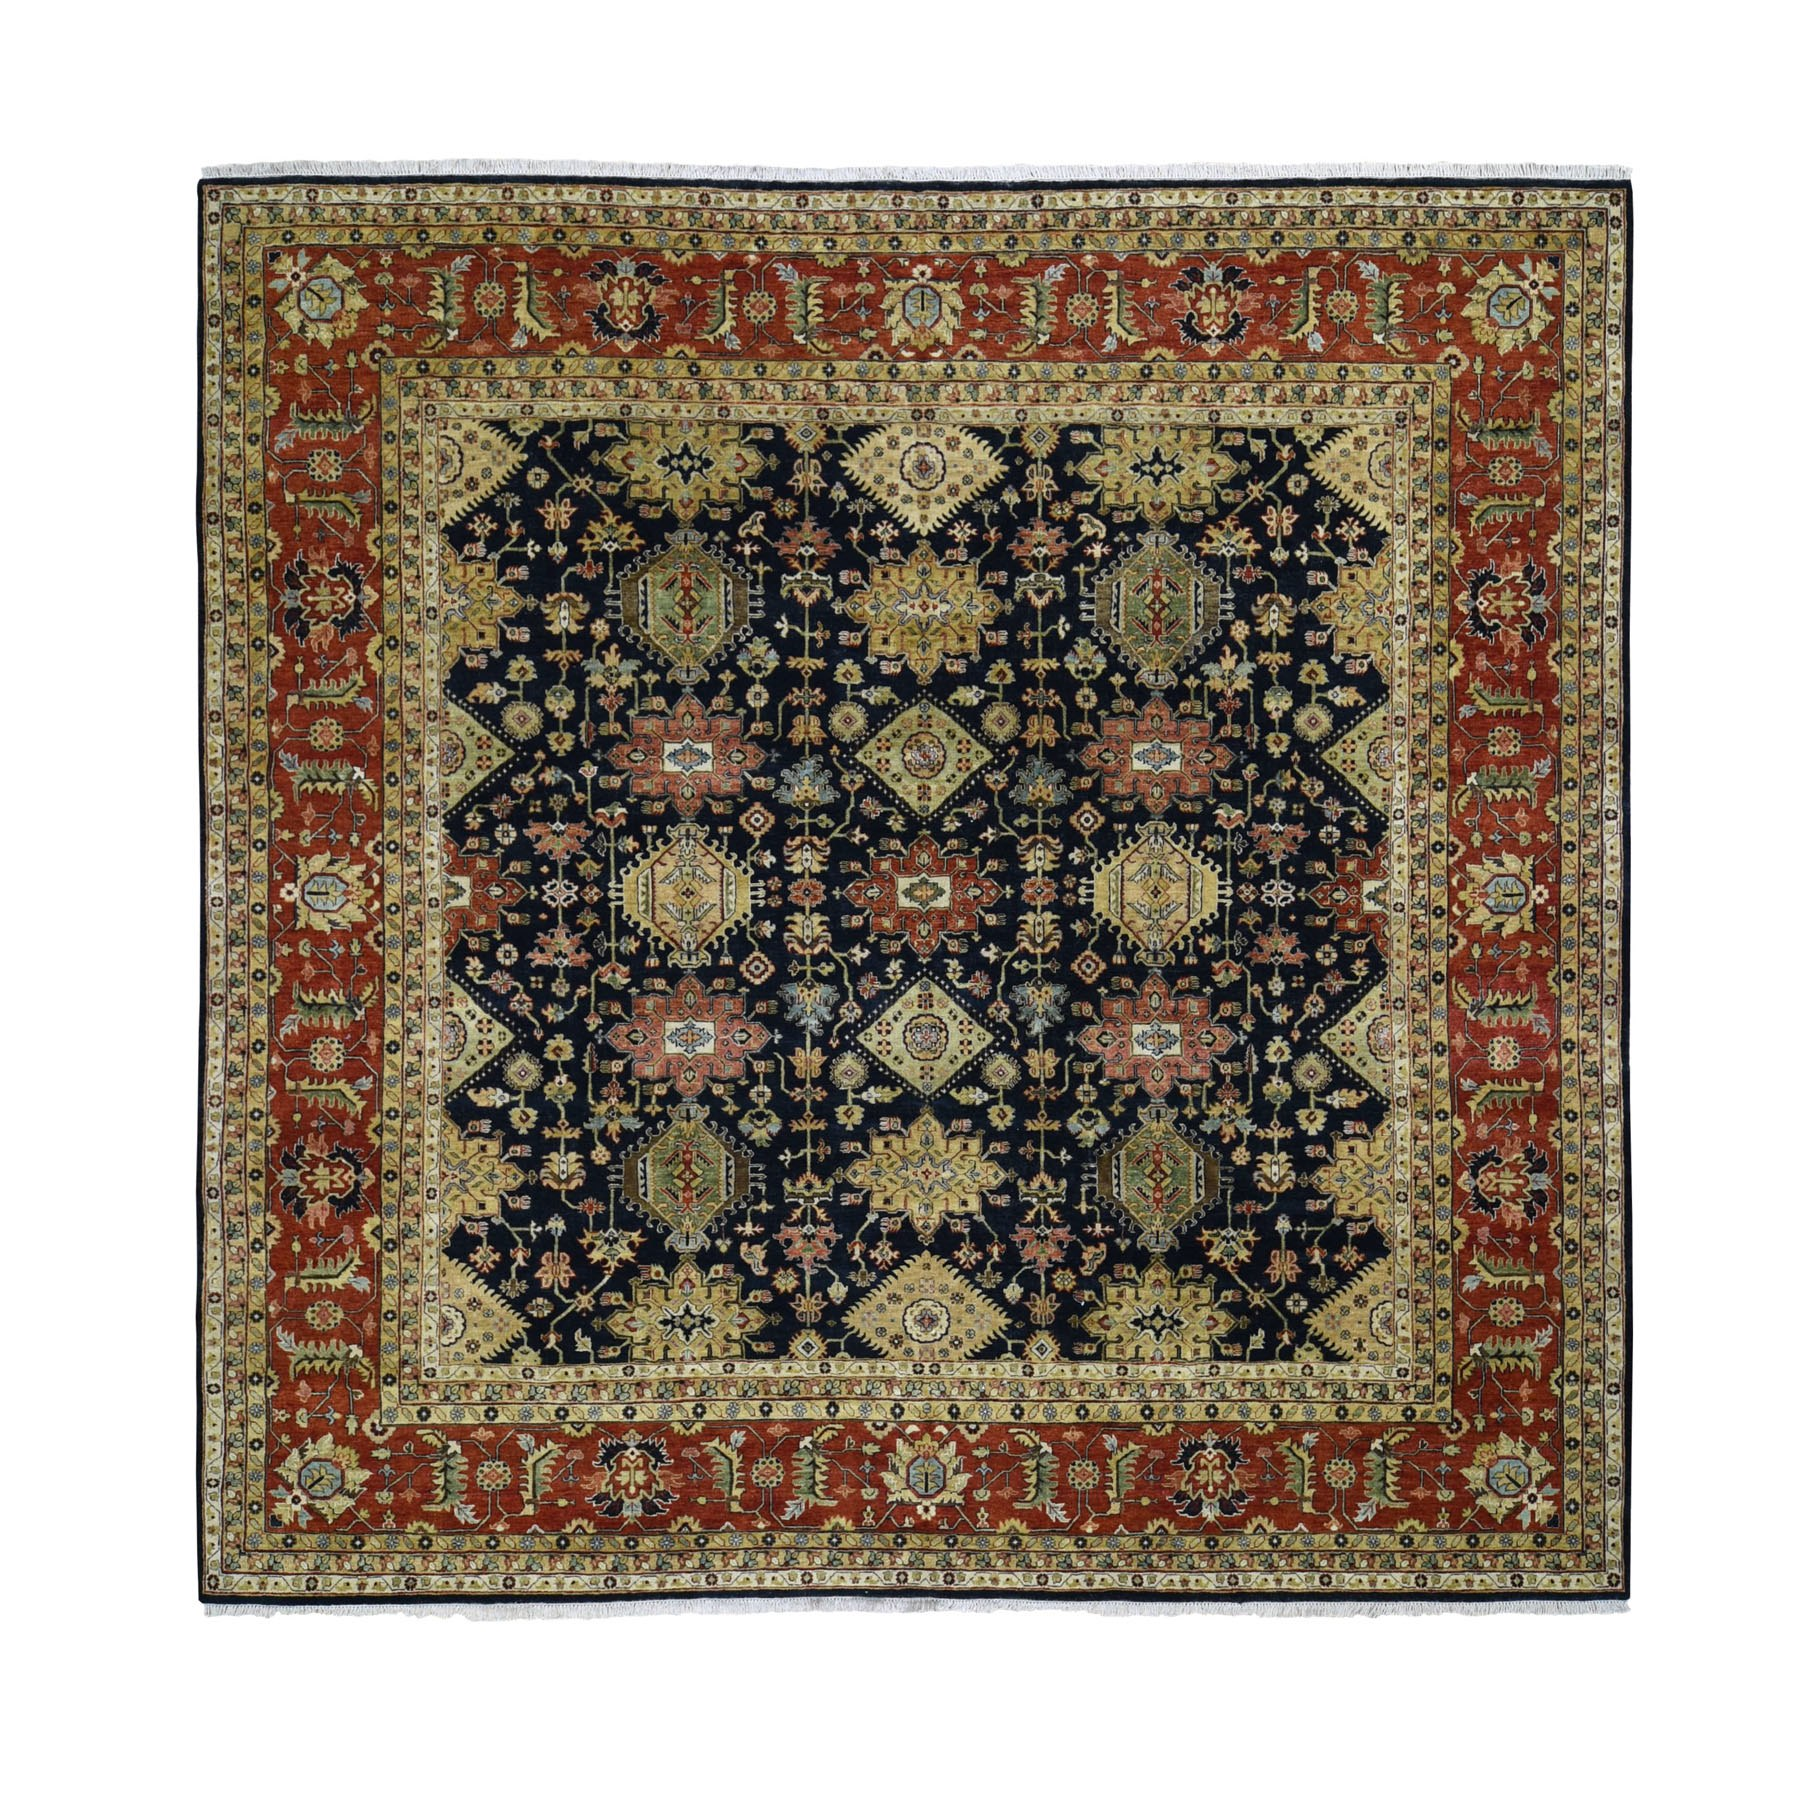 "11'9""x11'9"" Square Pure Wool Black Karajeh Hand Knotted Oriental Rug"